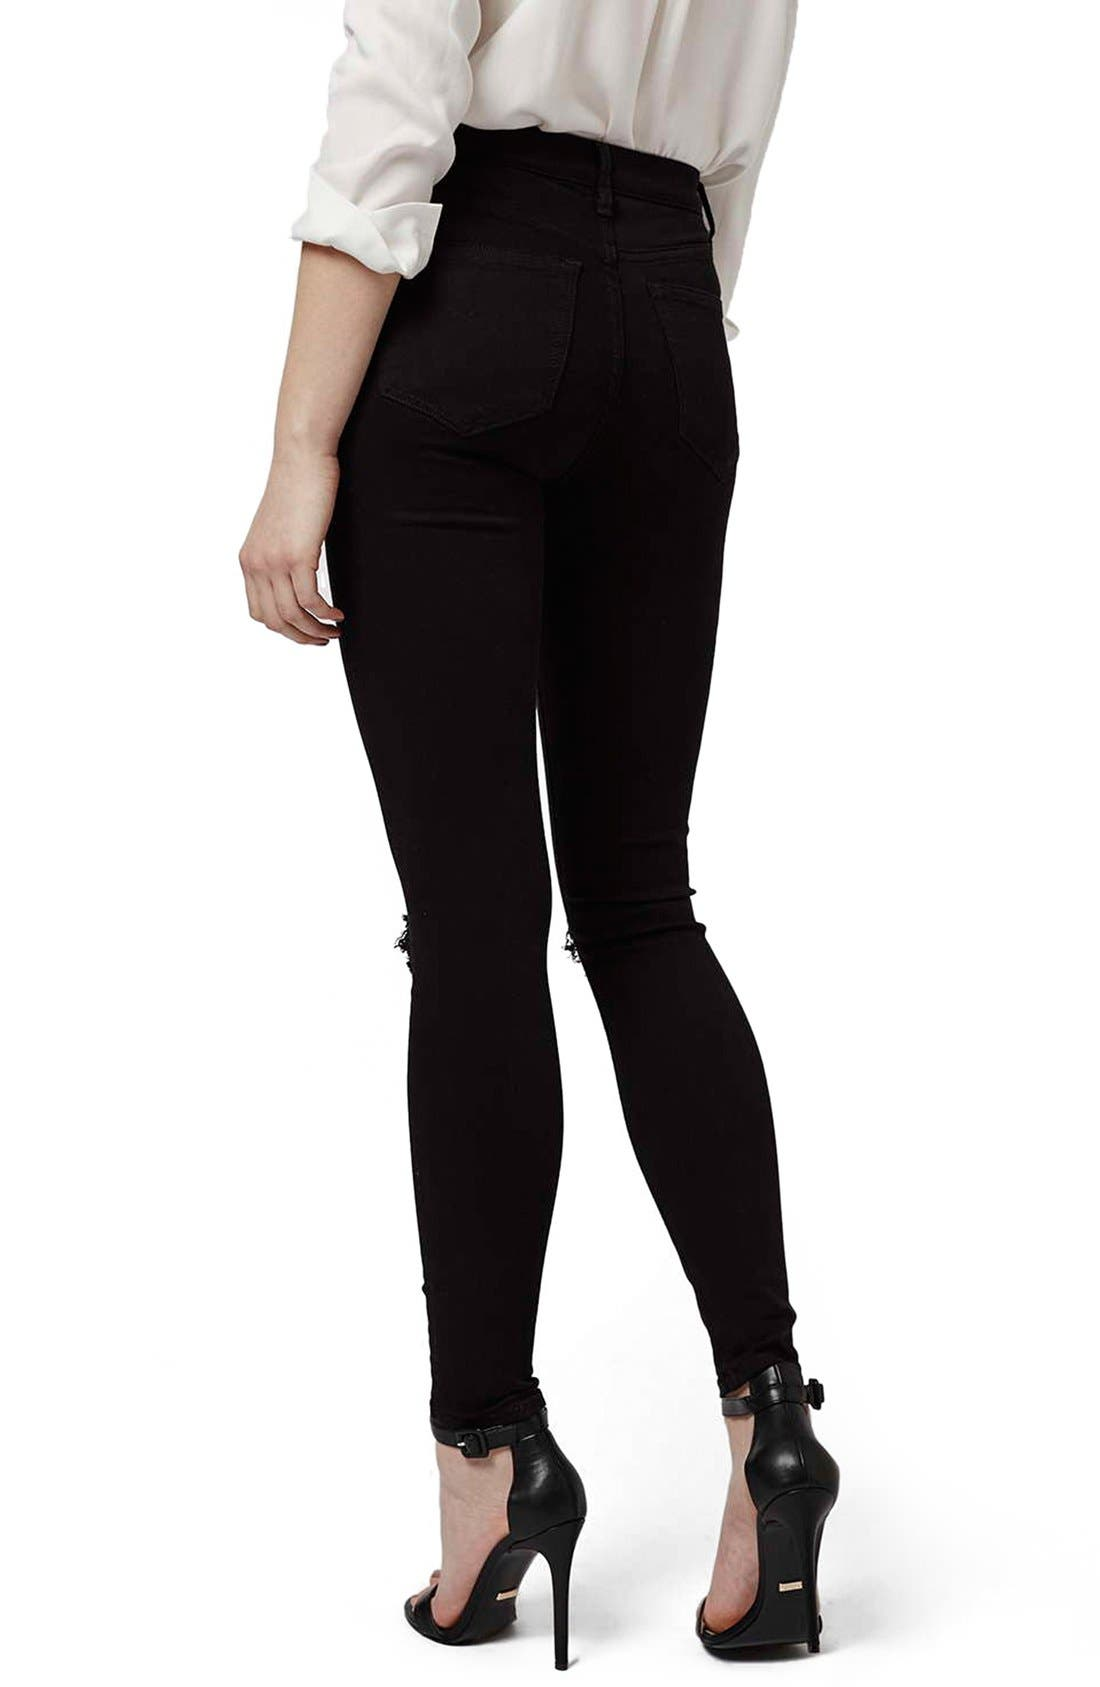 Ripped High Waist Ankle Skinny Jeans,                             Alternate thumbnail 9, color,                             001